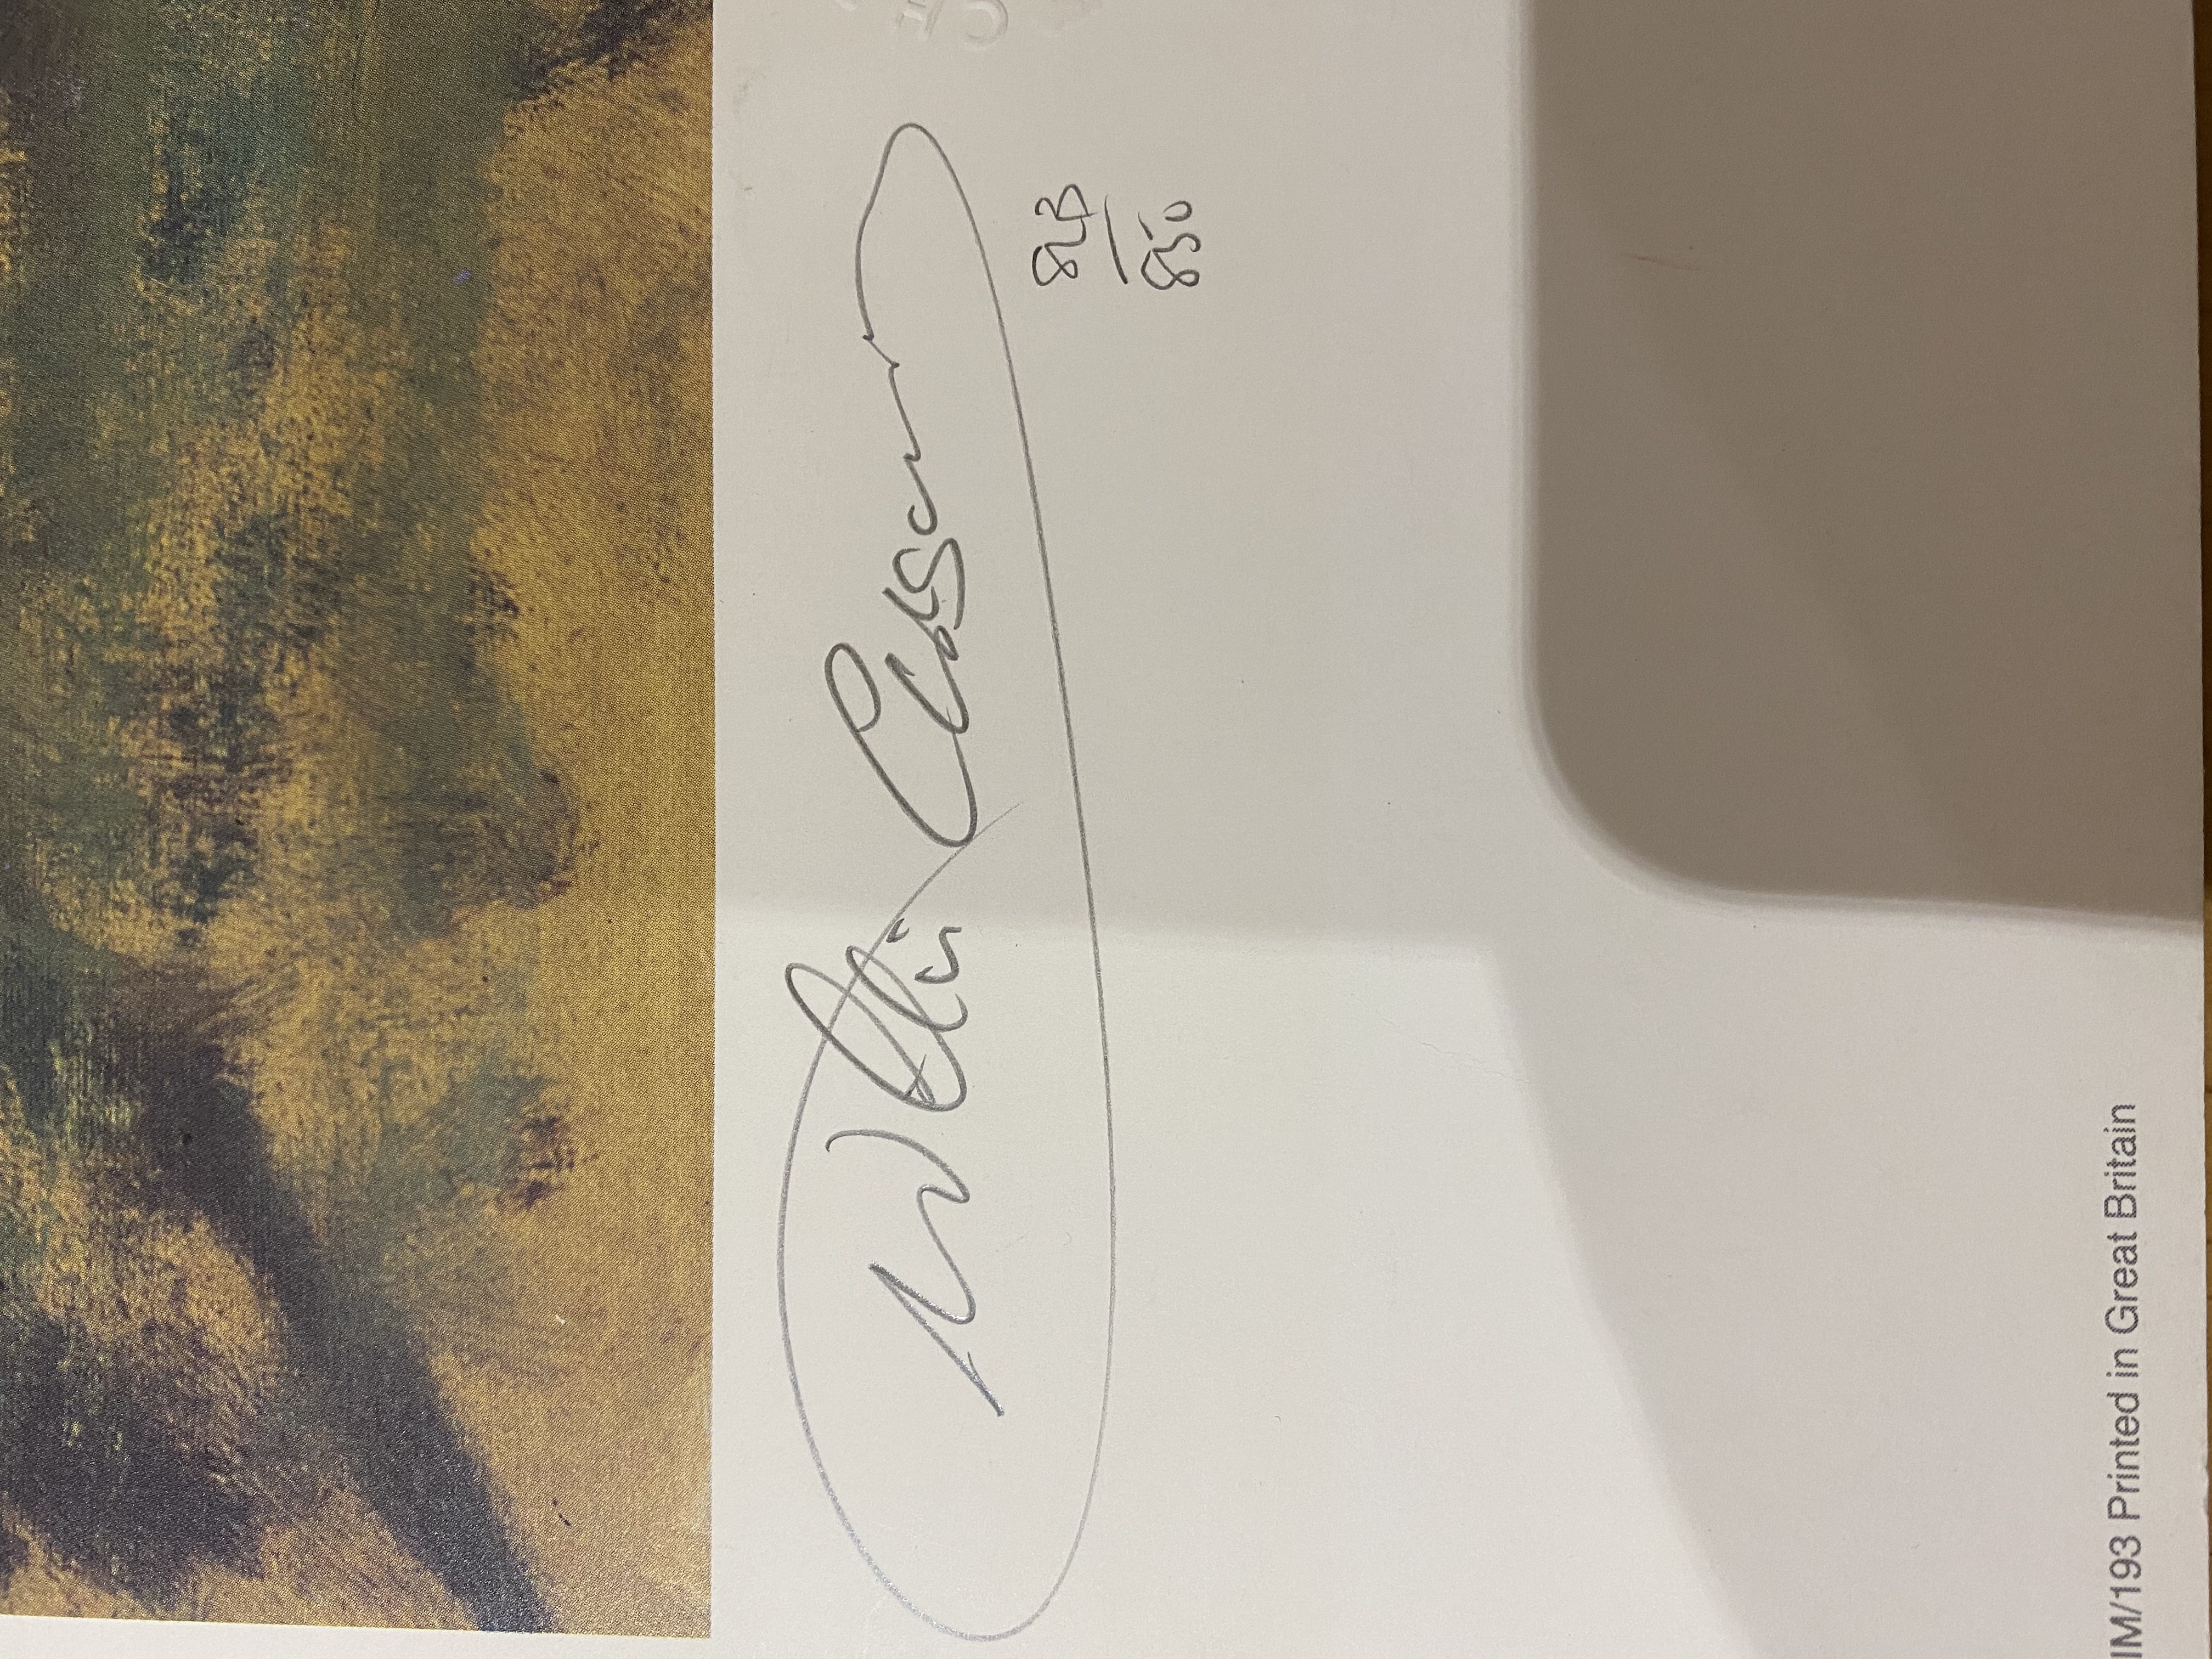 Claire Eva burton & Willie Carson Signed Limited Edition Print of Nashwan - Image 11 of 11